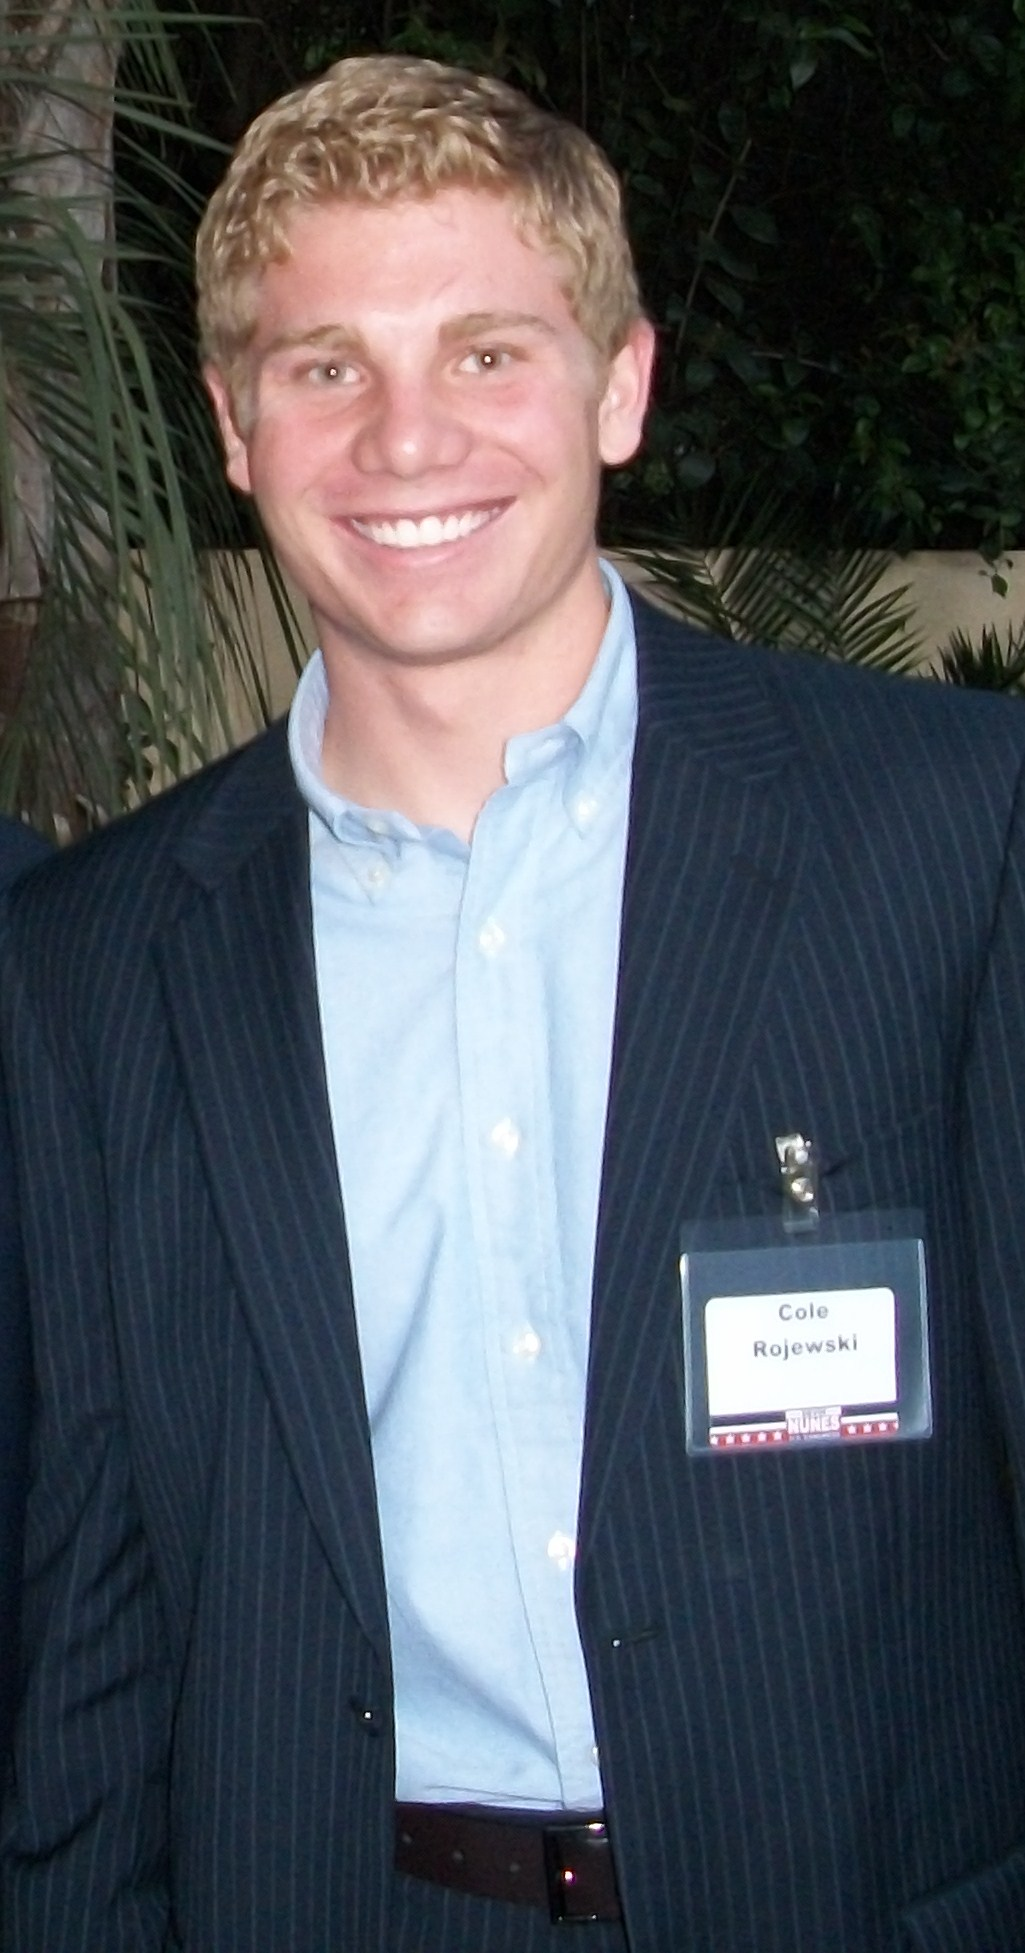 Description: http://collegegop.org/files/2010/05/Cole-Rojewski.jpg